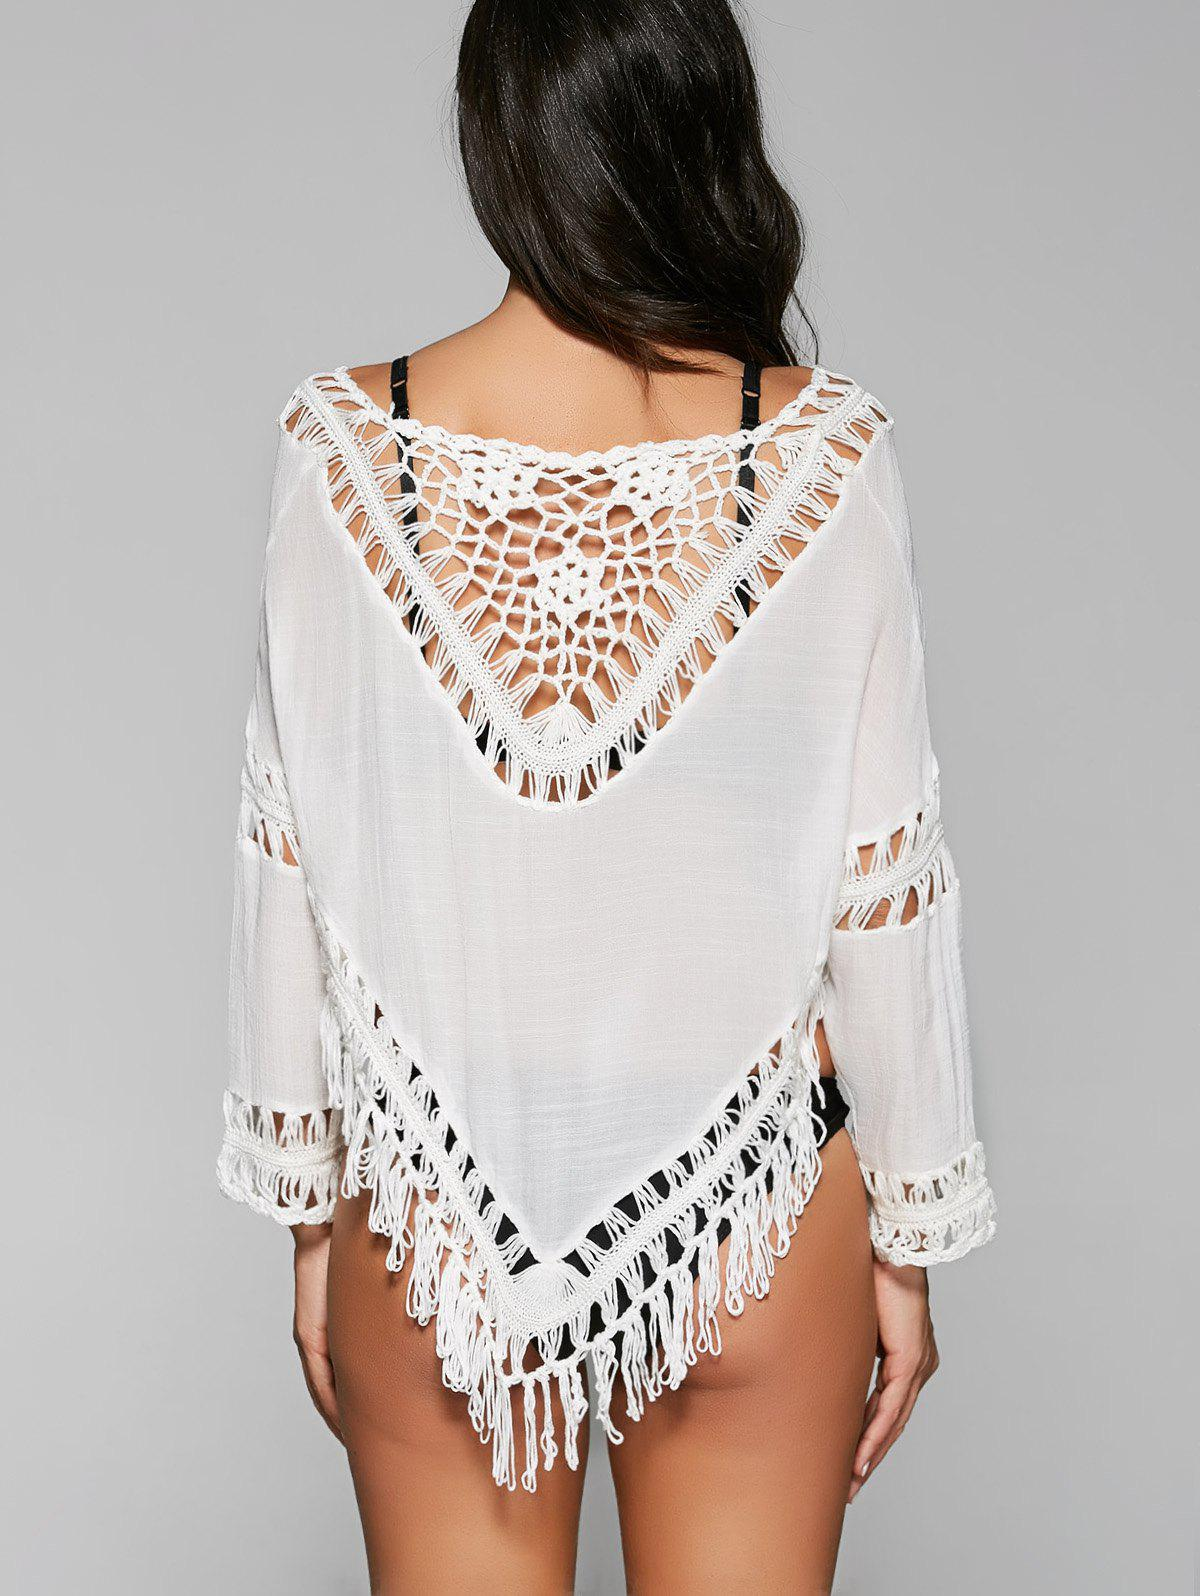 Chic 3/4 Sleeve Off-The-Shoulder Cut Out Women's Cover Up - WHITE ONE SIZE